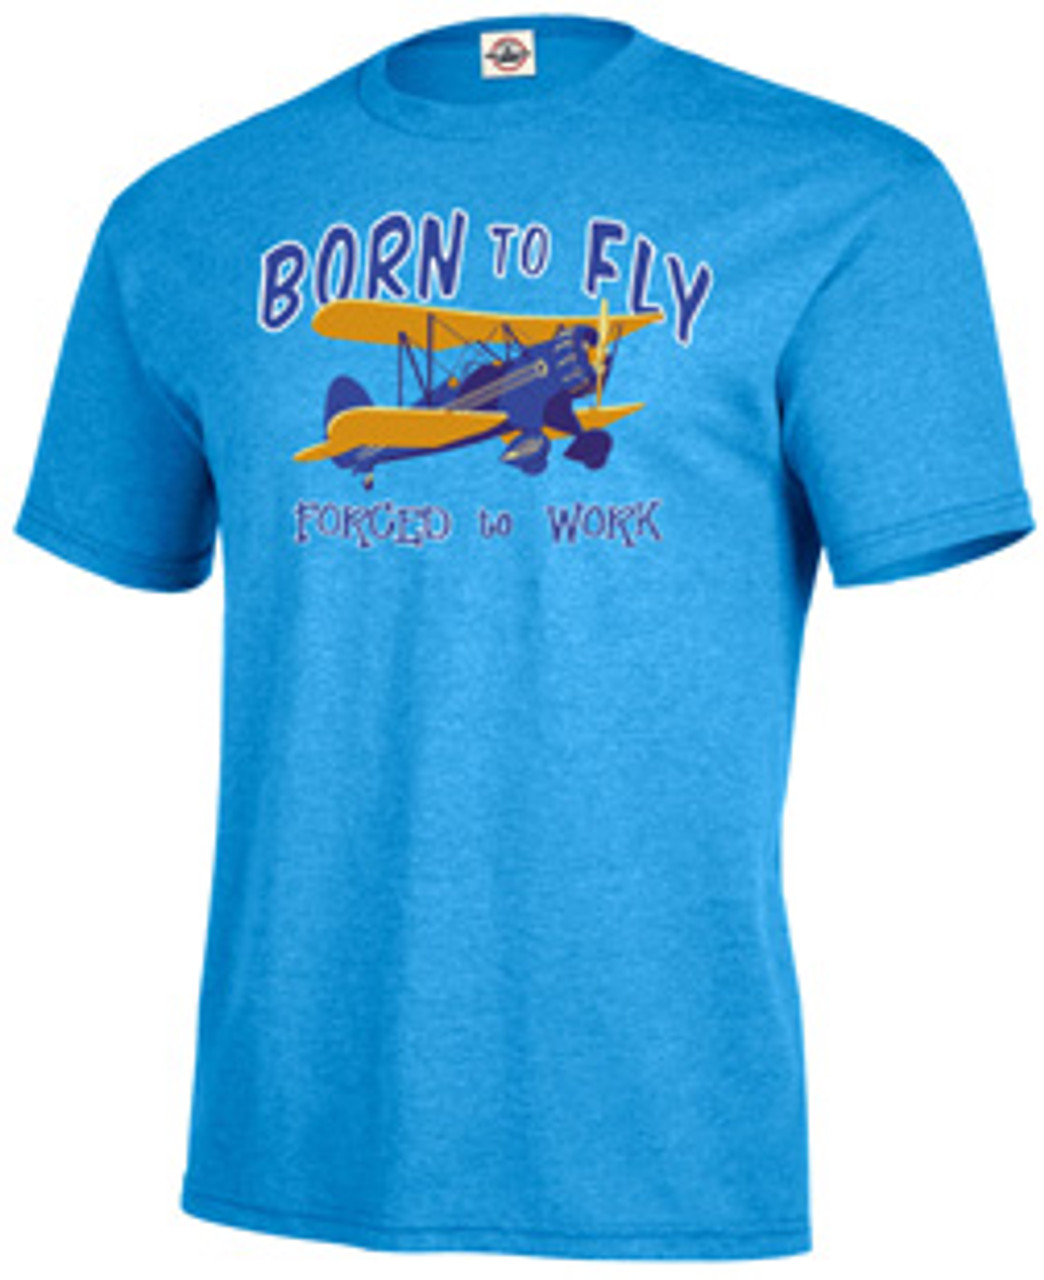 """Born To Fly -Forced To Work"" T-Shirt"